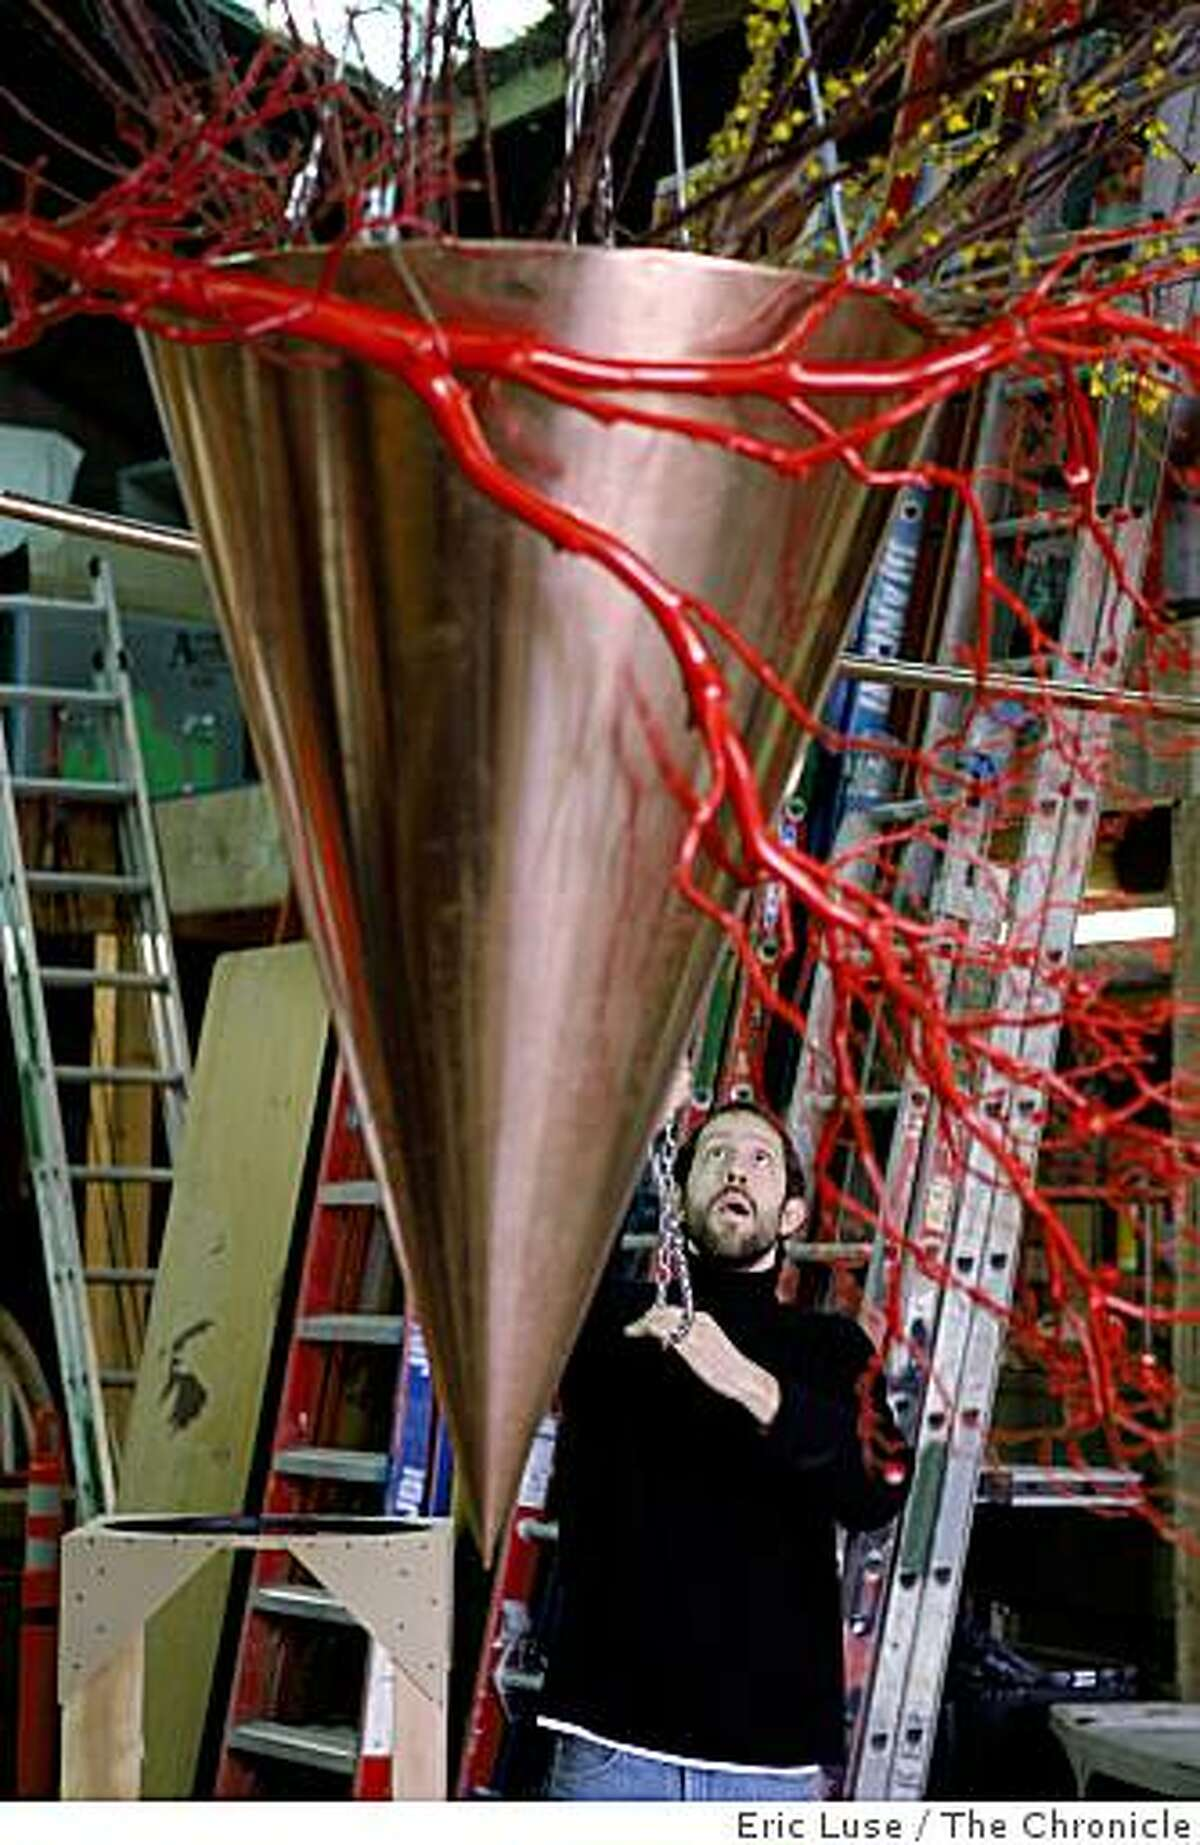 Designer Daniel Schultz is helping with Natasha Lisitsa's very large flower installation being built in a warehouse in South San Francisco for the Bouquet to Arts at the de Young Museum photographed on Tuesday, March 3, 2009.